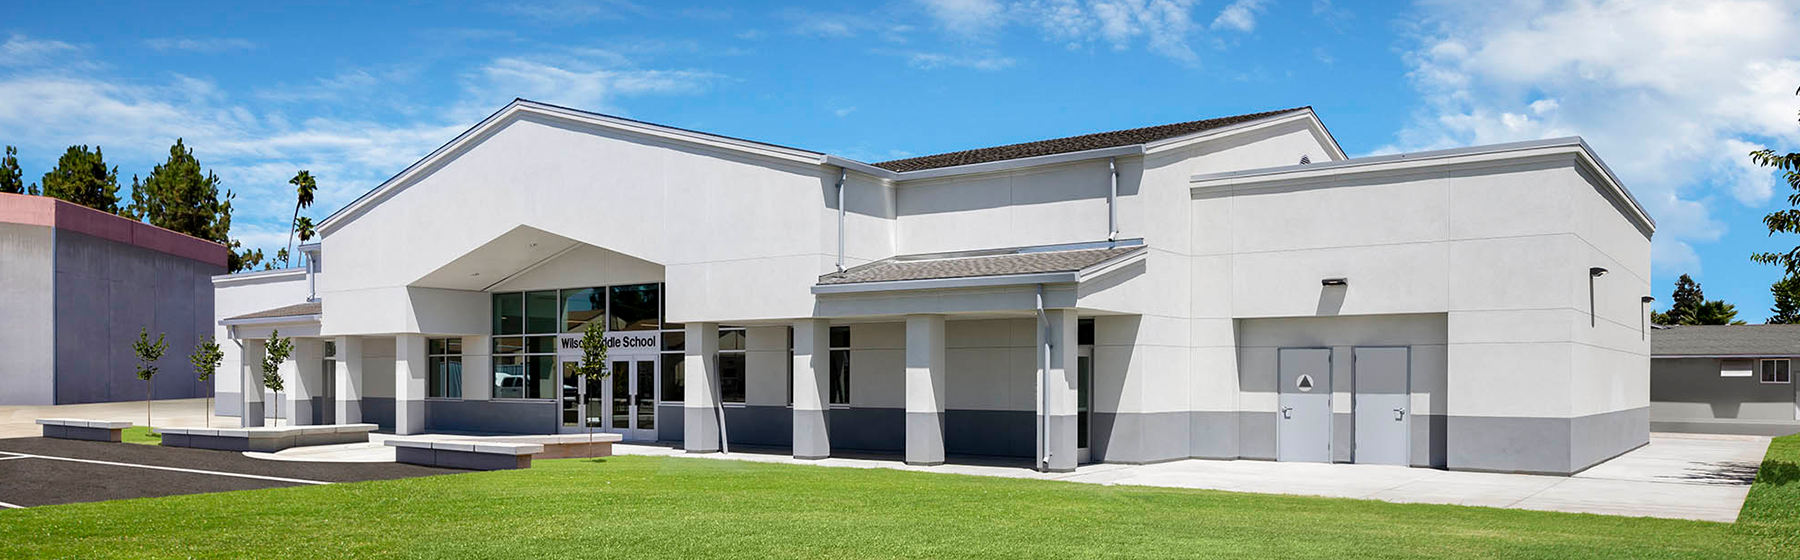 Multipurpose Buildings Complete at Chowchilla Elementary School District